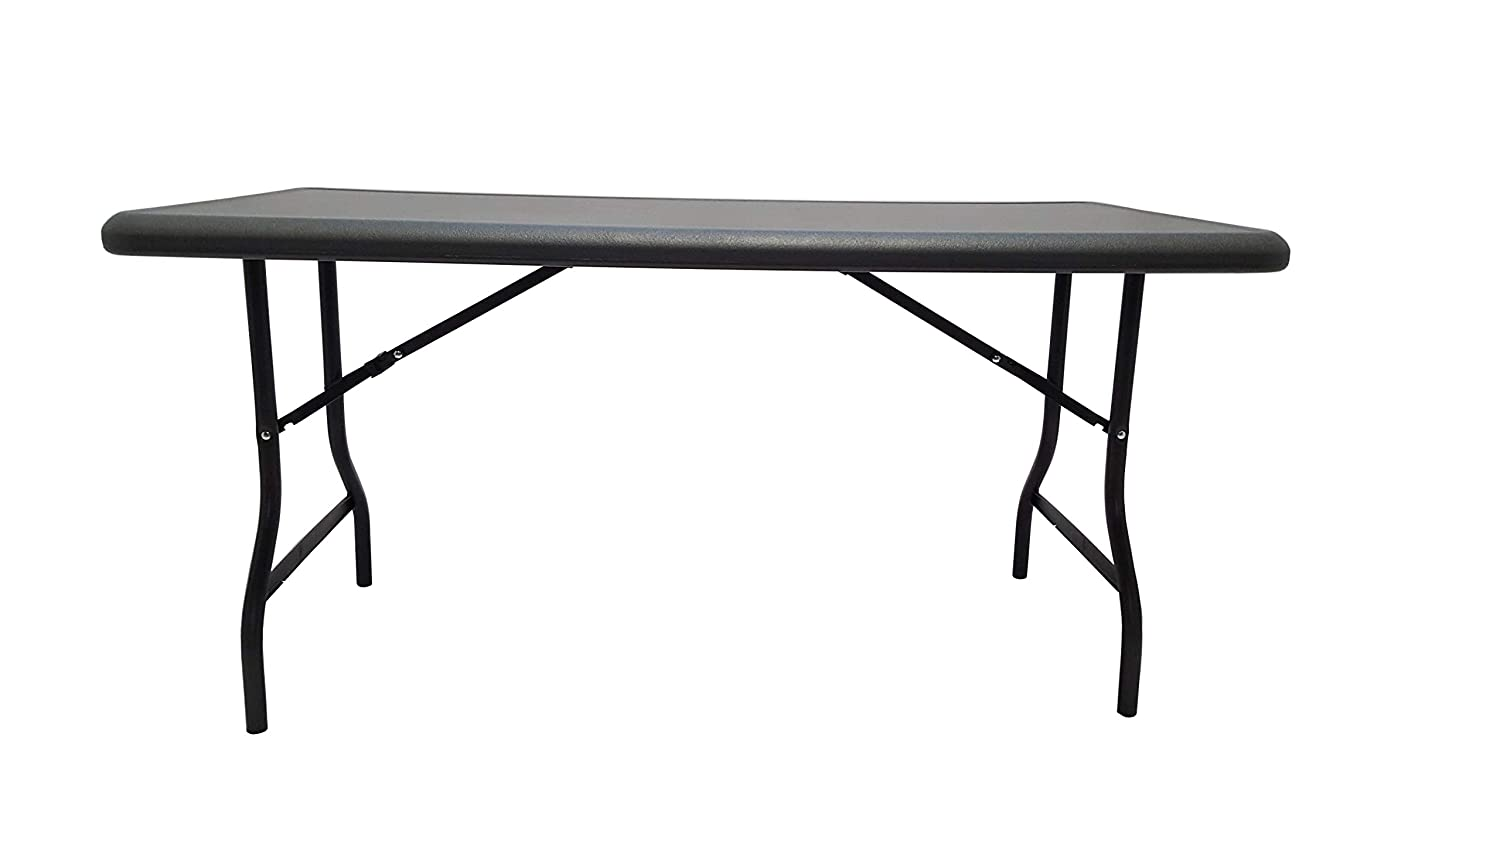 Iceberg Ice65217 Indestructable Too 1200 Series Steel Legs Plastic Folding Table 2000 Lbs Capacity 60 Length X 30 Width X 29 Height Charcoal Industrial Scientific